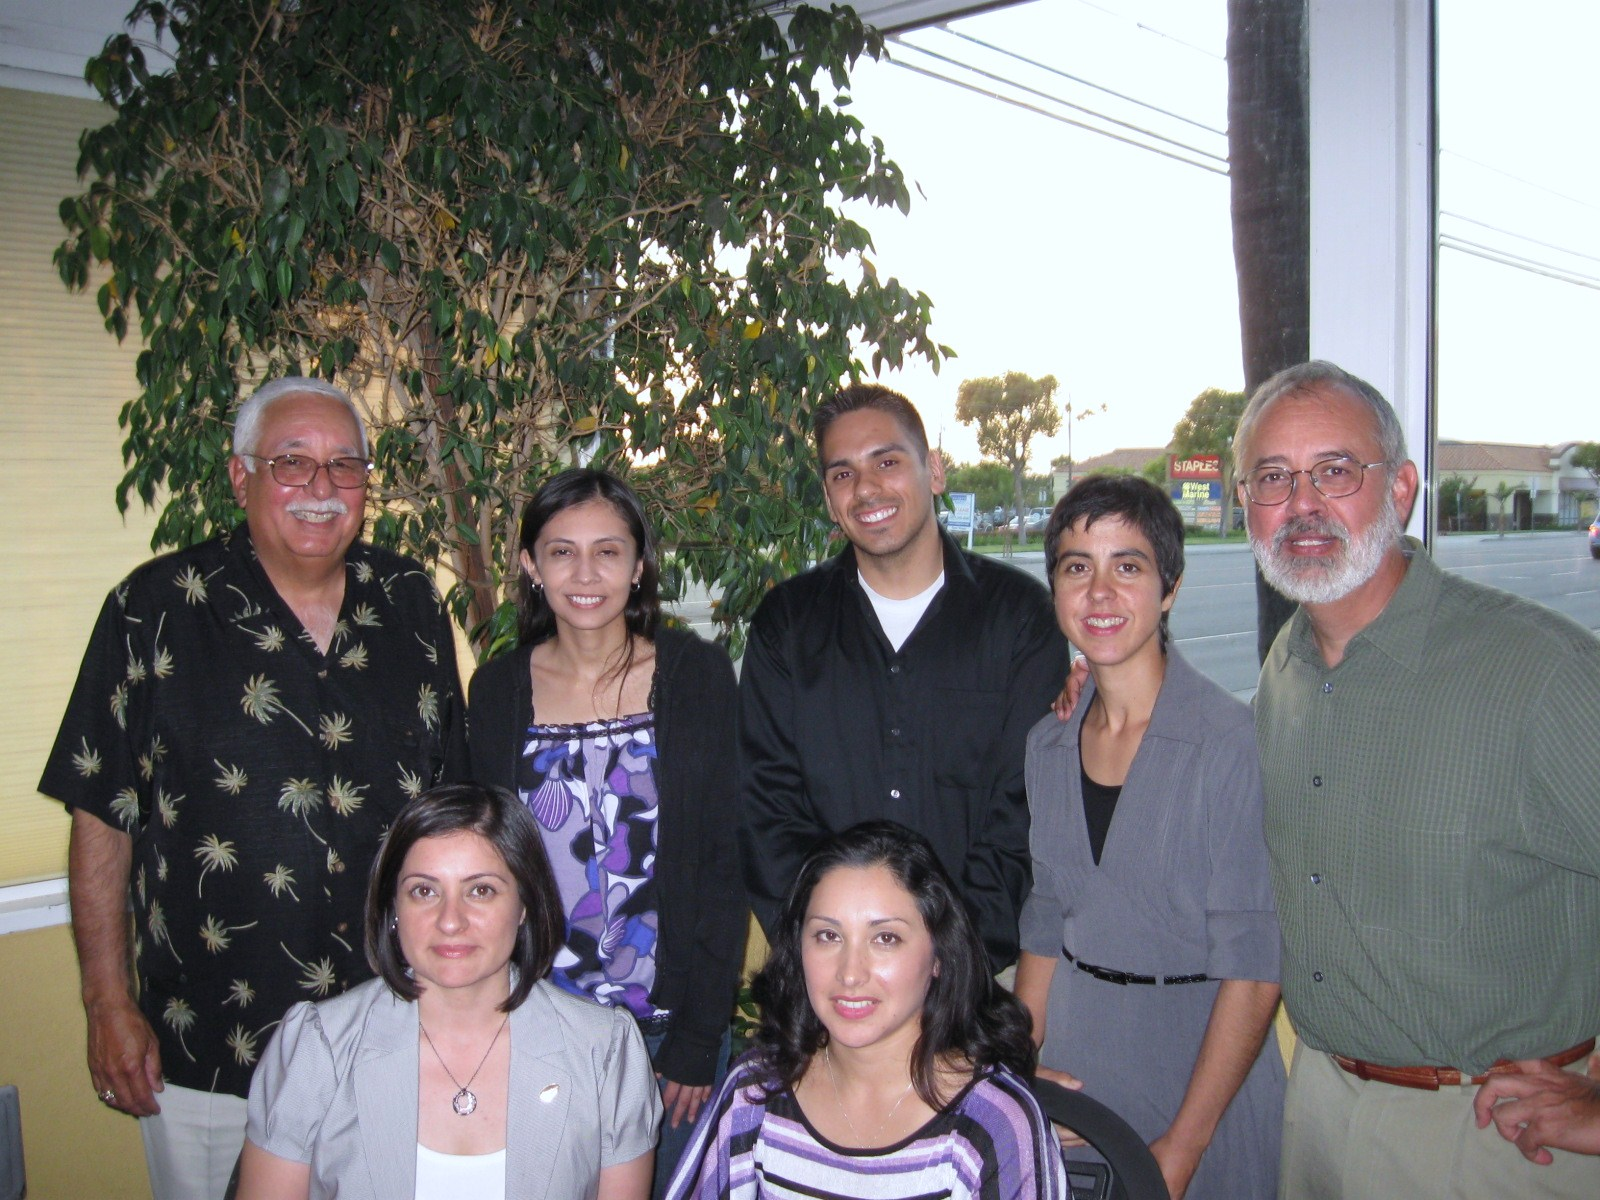 First Row from Left: Monica Lopez (OC REFORMA President), Patty Lopez (Scholarship Chair), 2nd Row from left: John Ayala, Margaret Puentes, Edward Luna, Erica Dietz, & Richard Serrato.  Not pictured:  Zulma Zepeda and Alma Magana